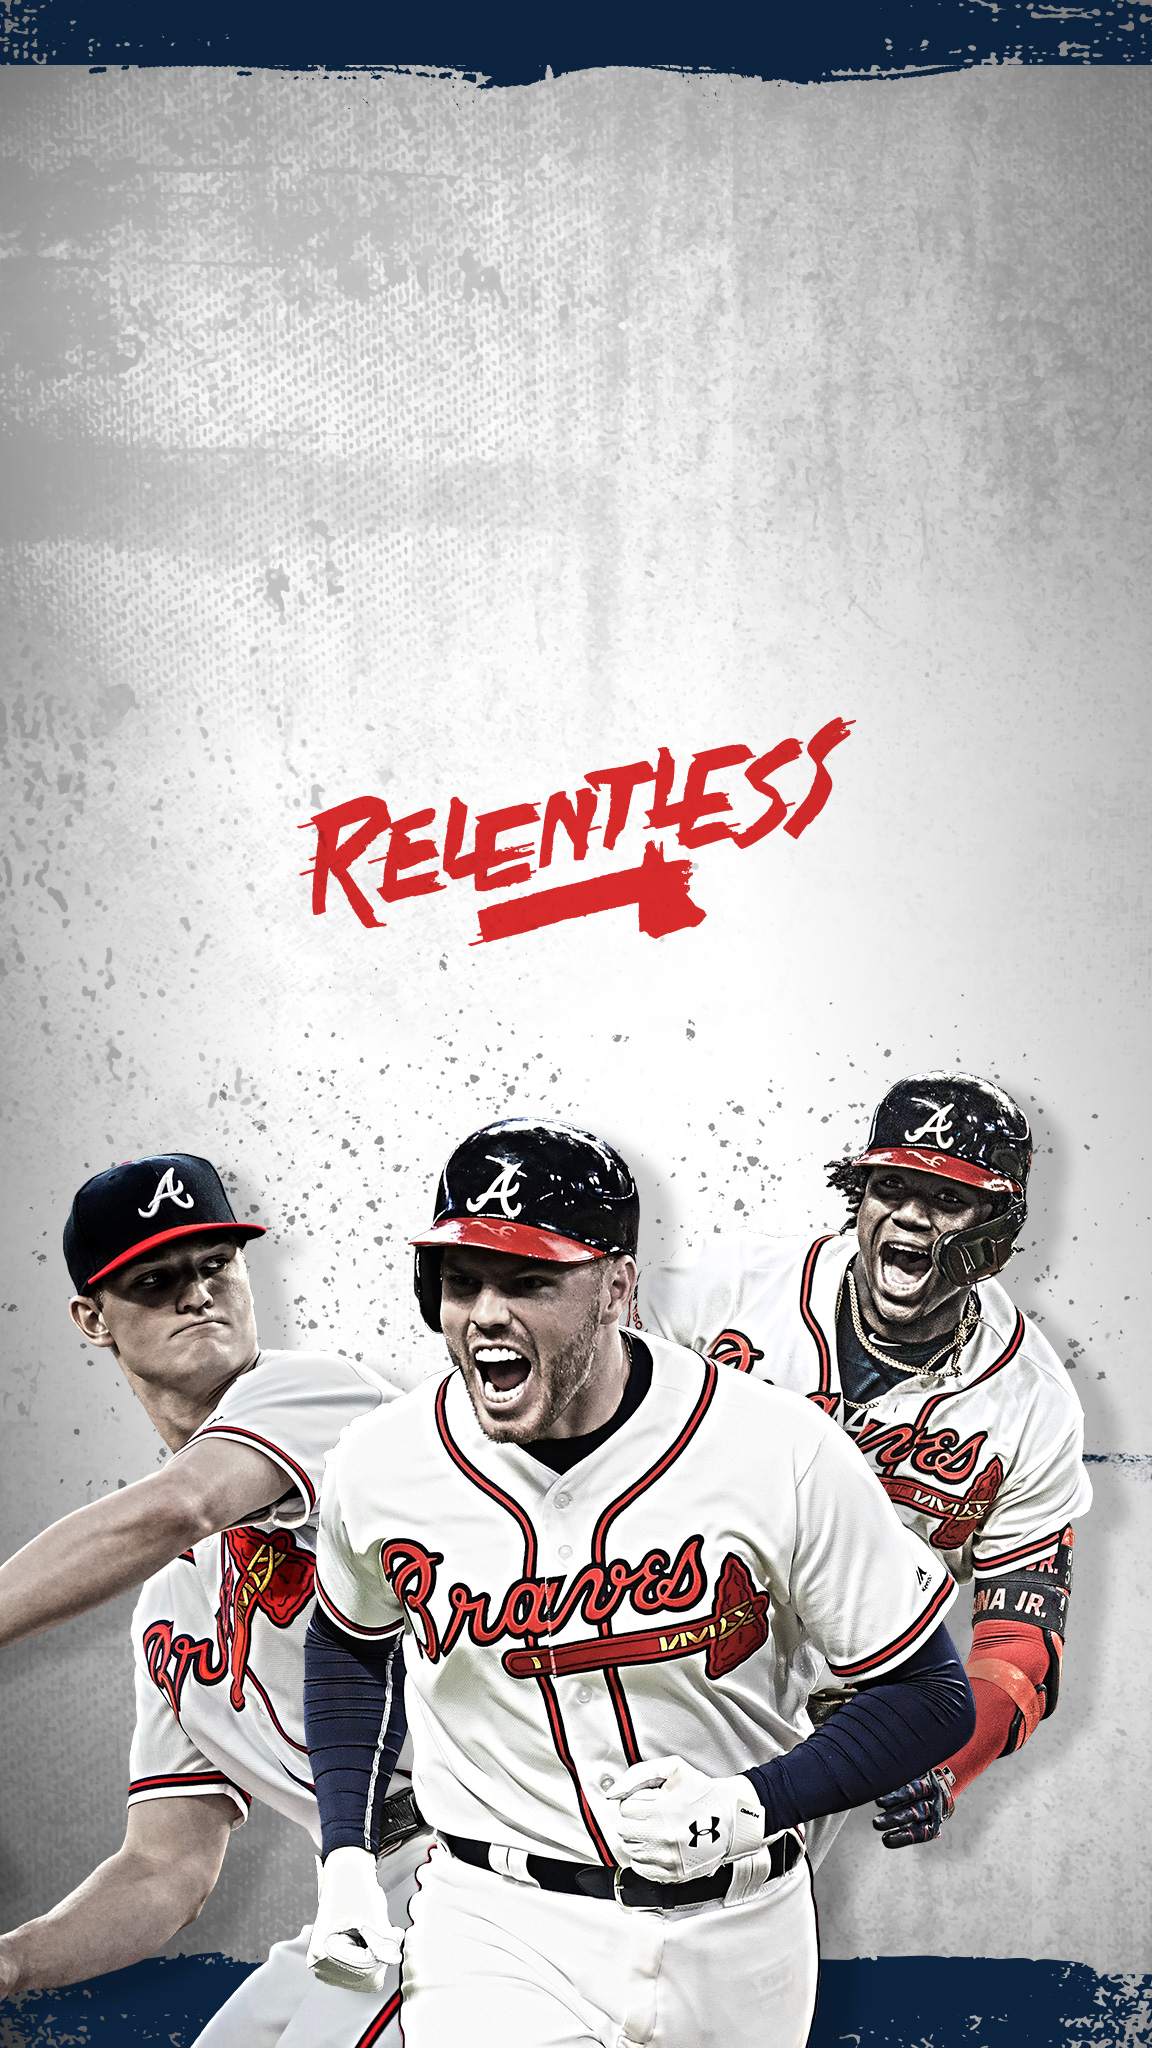 Relentless Atlanta Braves